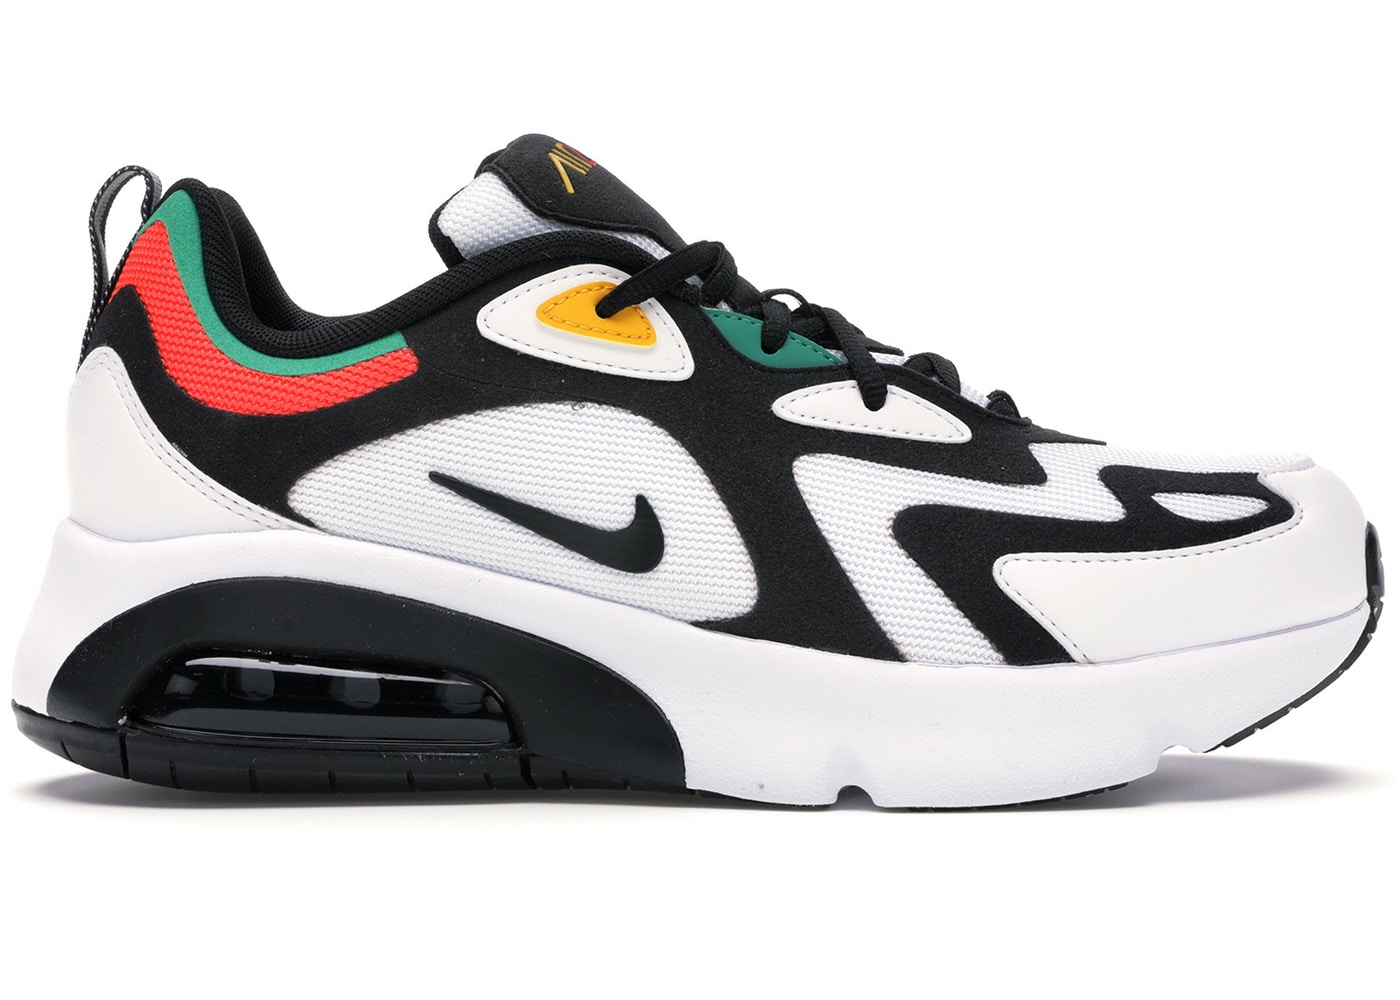 punto final Están deprimidos Limitado  Nike Air Max 200 Rasta (GS) - AT5627-100